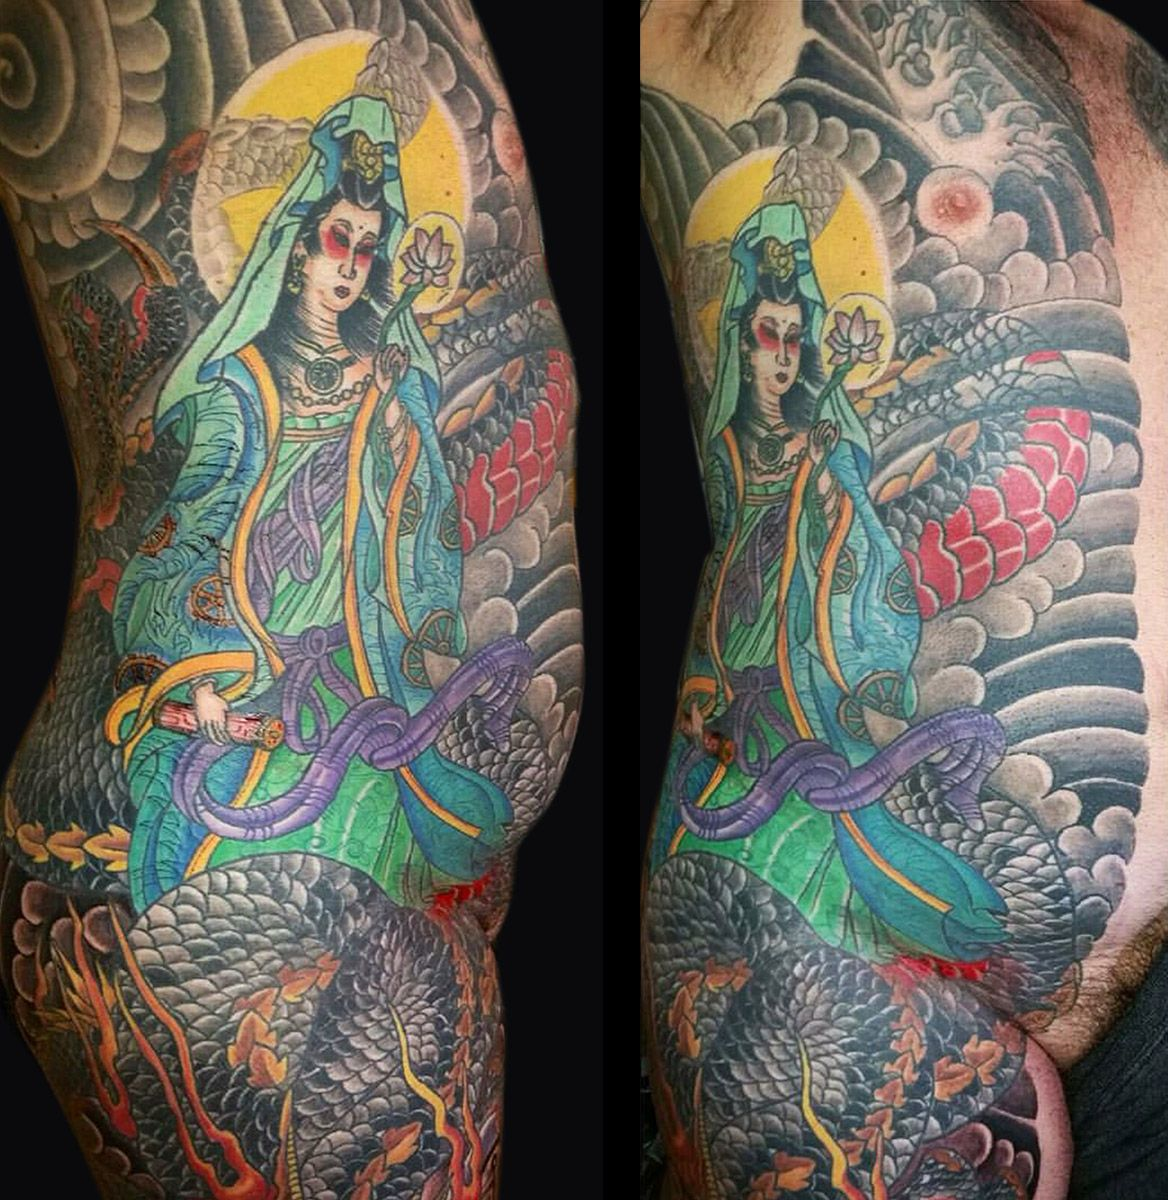 Traditional Irezumi Japanese Tattoo By Scott Ronin Dallas Tx Lone Star Tattoo Ig Scott Ronin72 Star Tattoos Lone Star Tattoo Tattoos